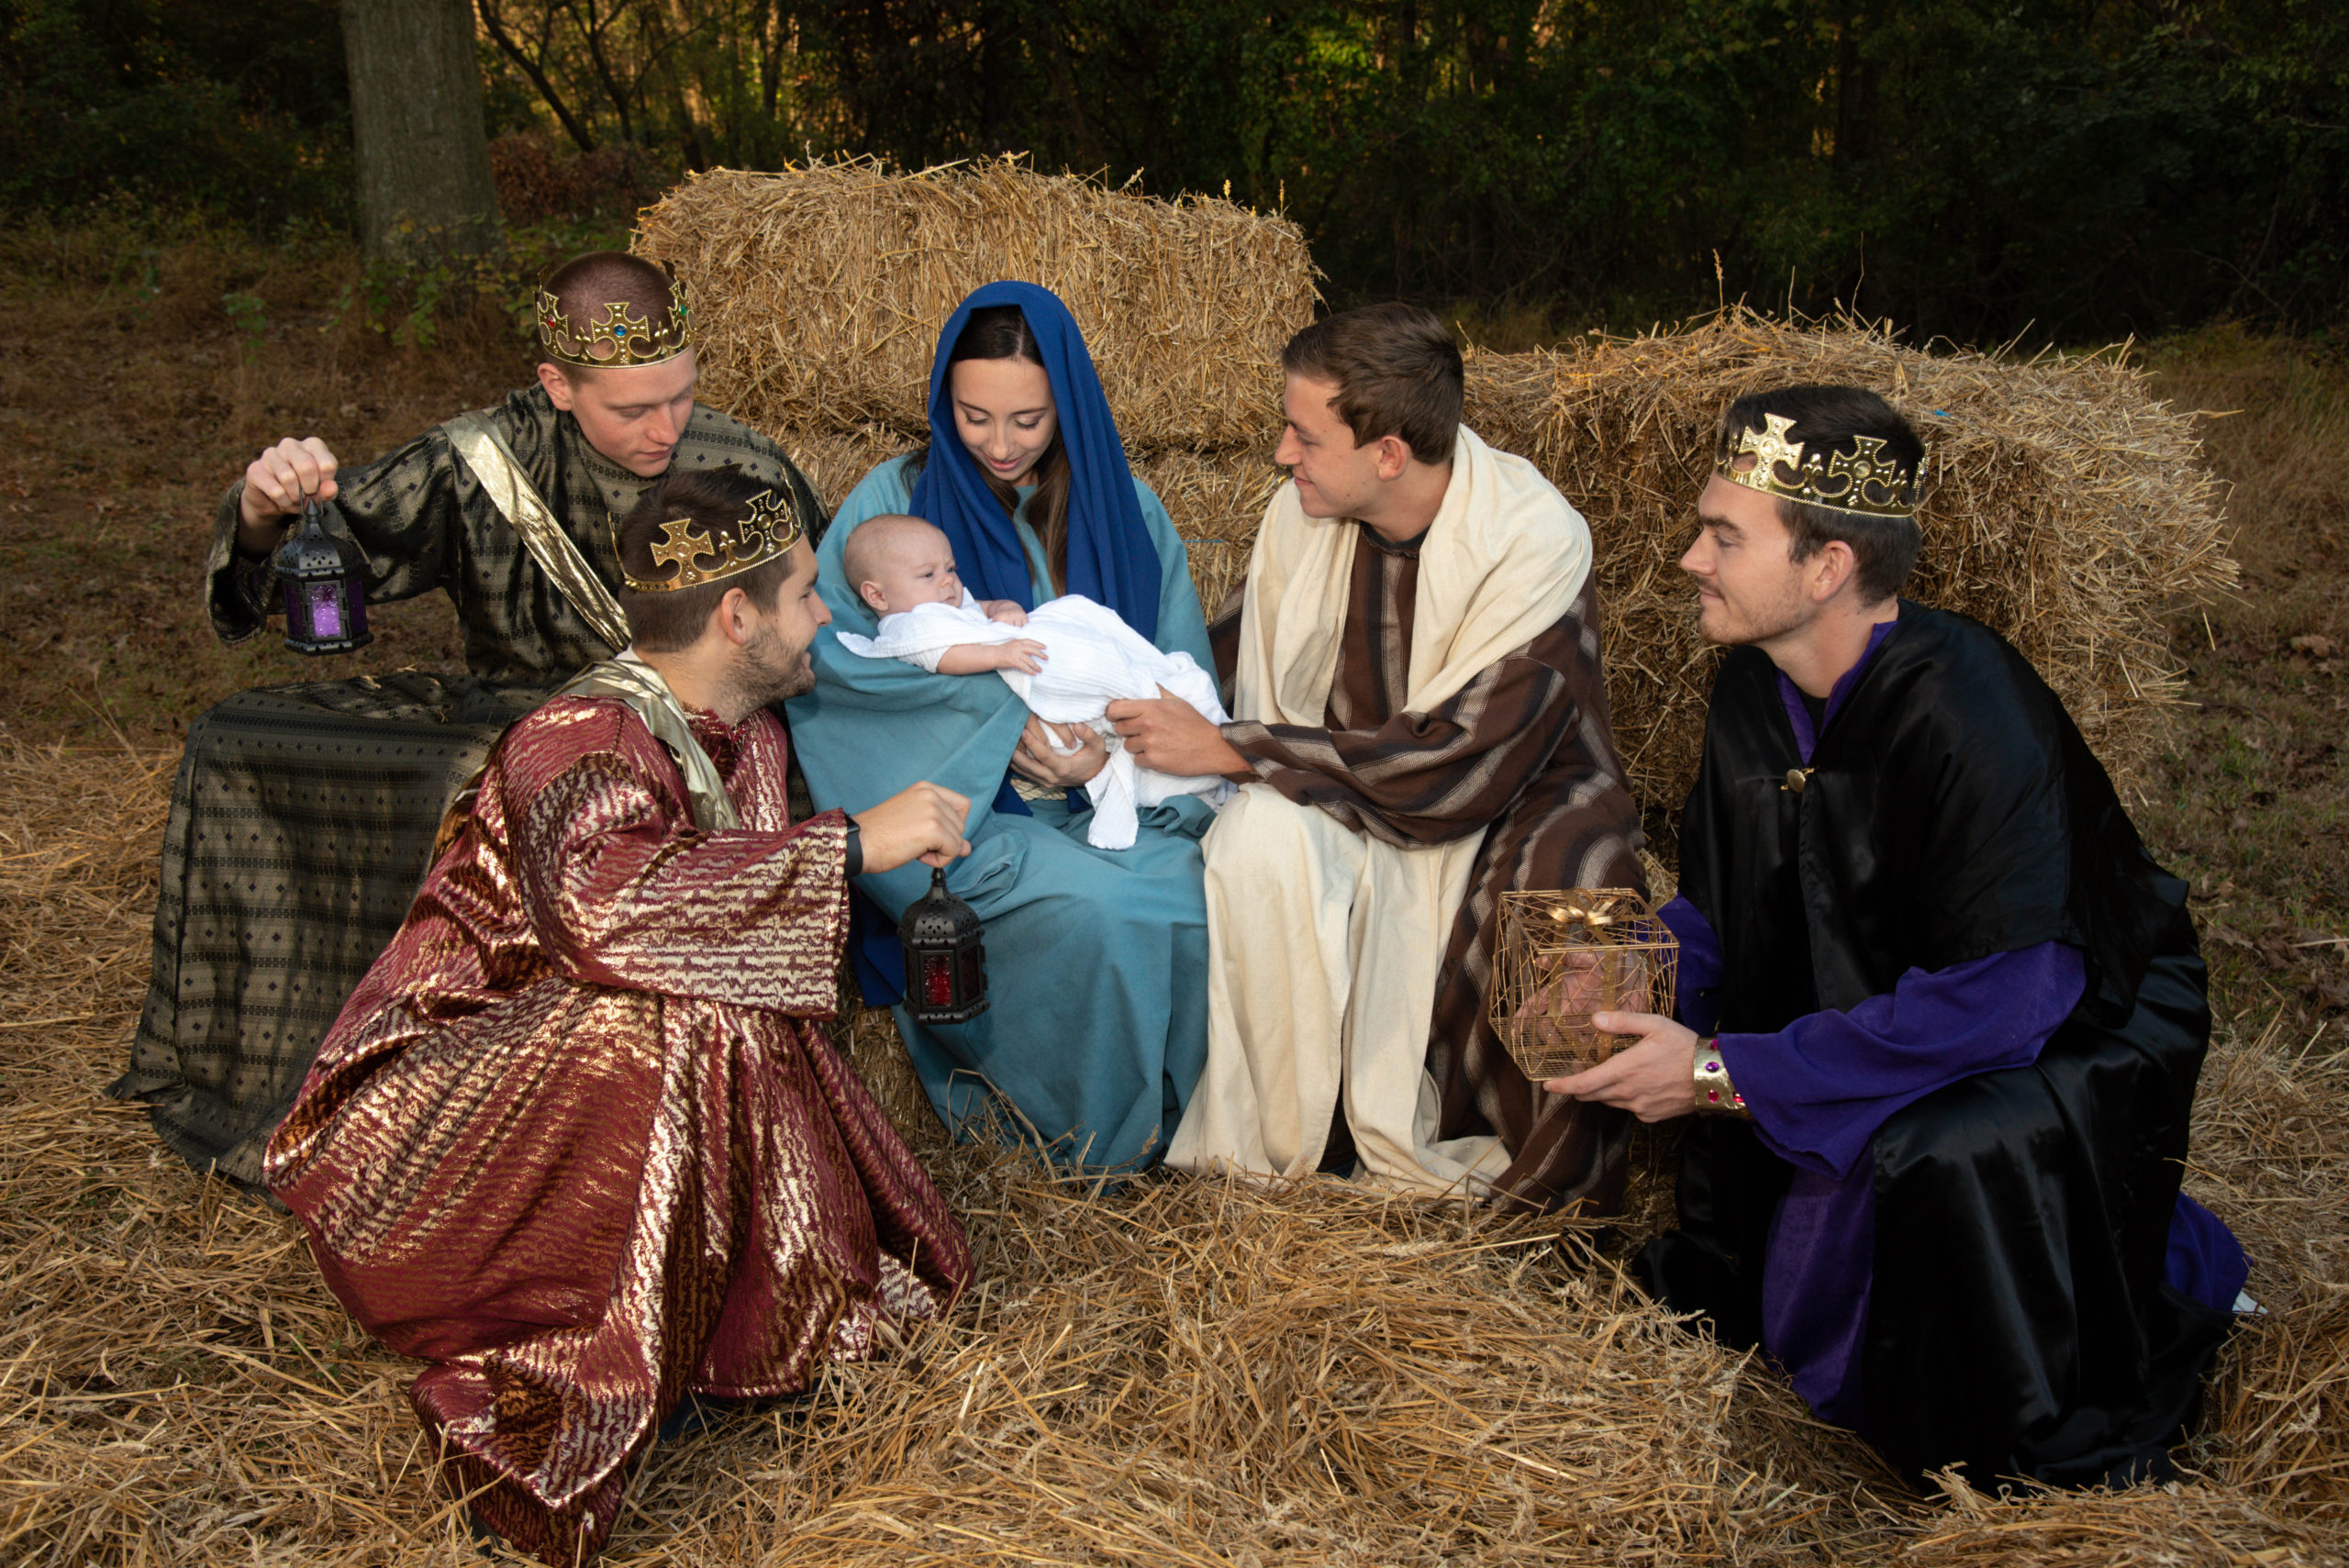 Live Nativity at Neumann University on December 8